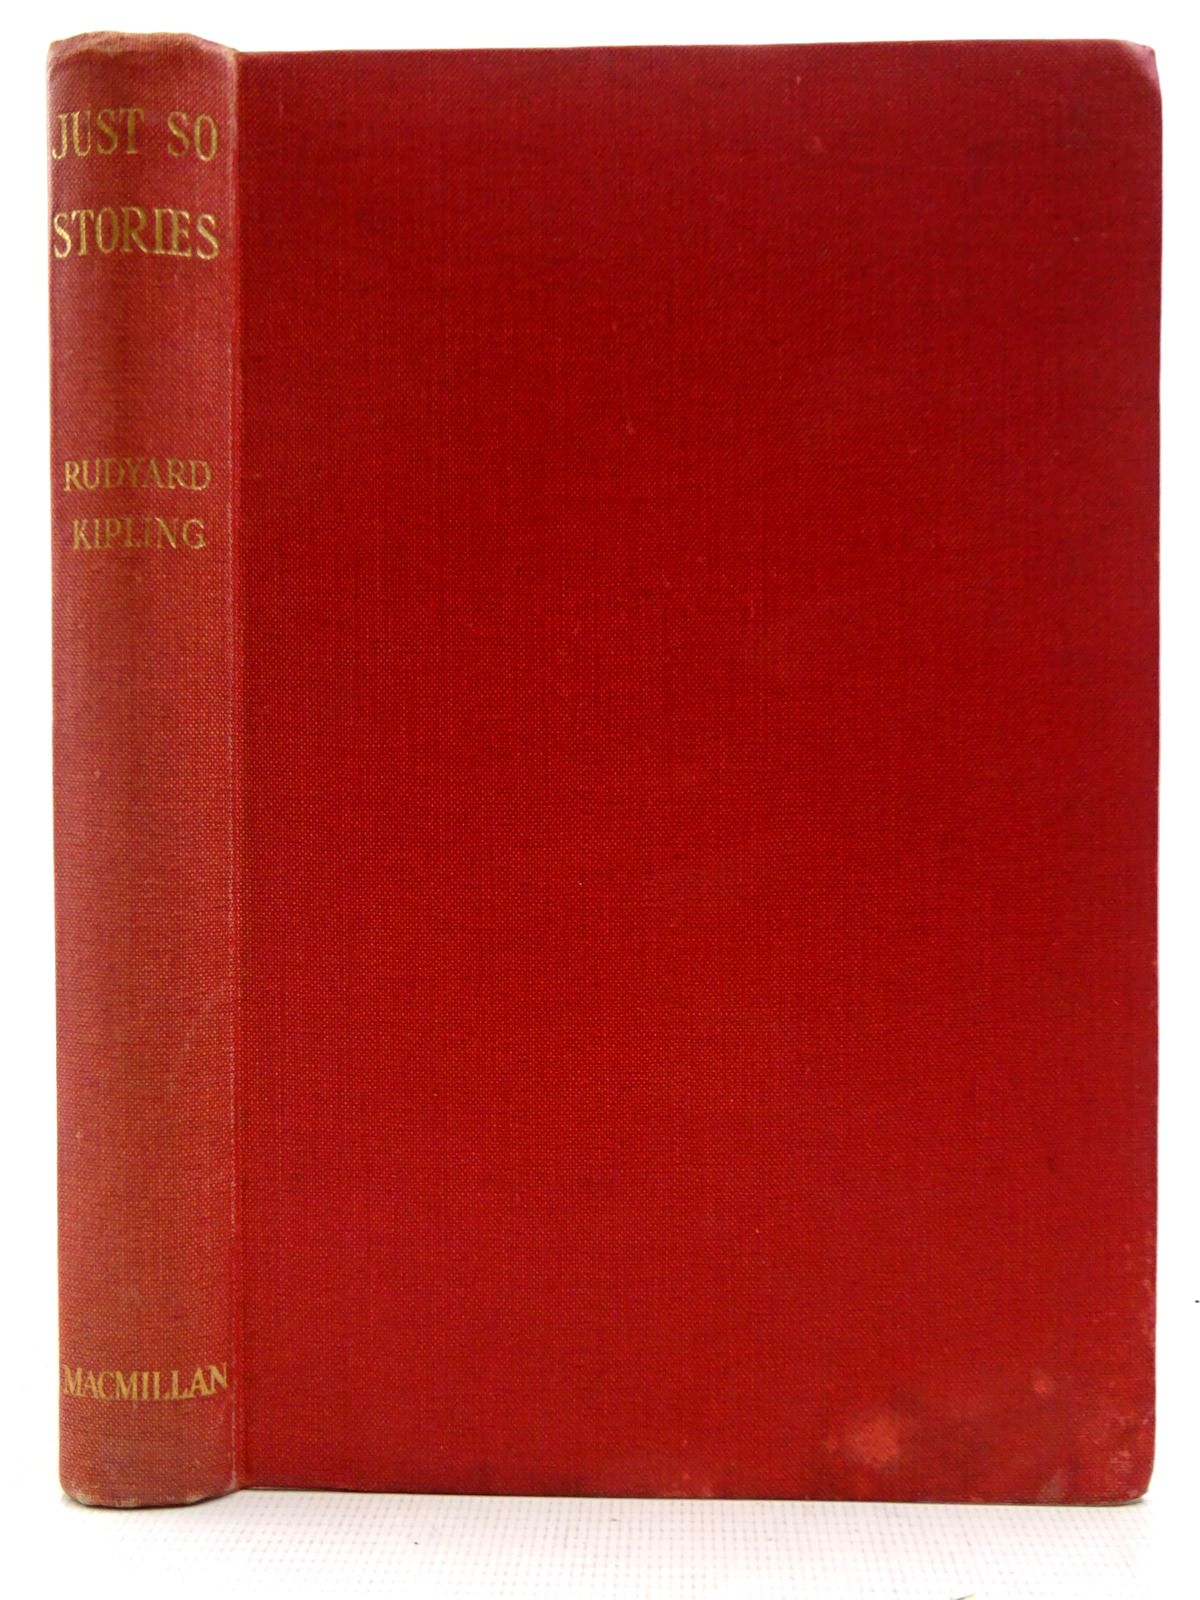 Photo of JUST SO STORIES written by Kipling, Rudyard illustrated by Kipling, Rudyard published by Macmillan & Co. Ltd. (STOCK CODE: 2128720)  for sale by Stella & Rose's Books